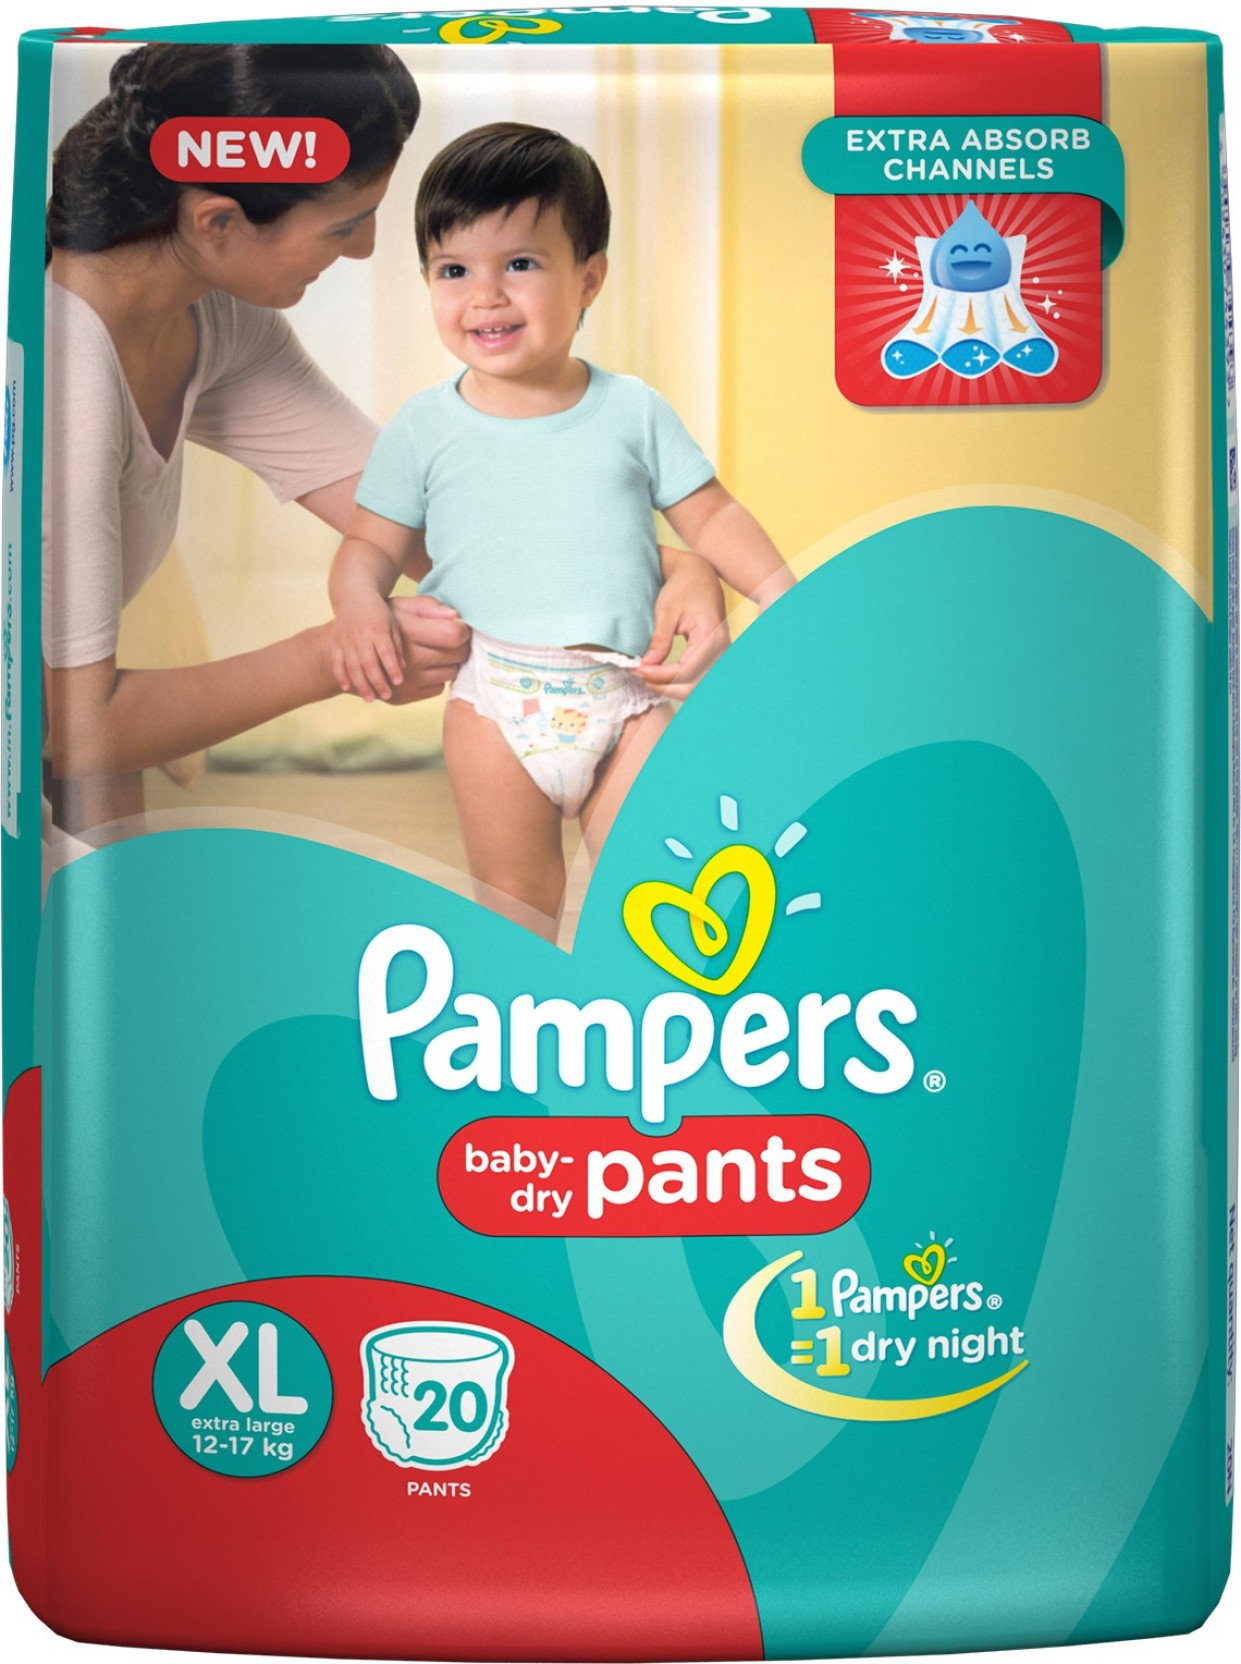 Pampers Pant Diapers Xl Buy 20 Pampers Cotton Inner